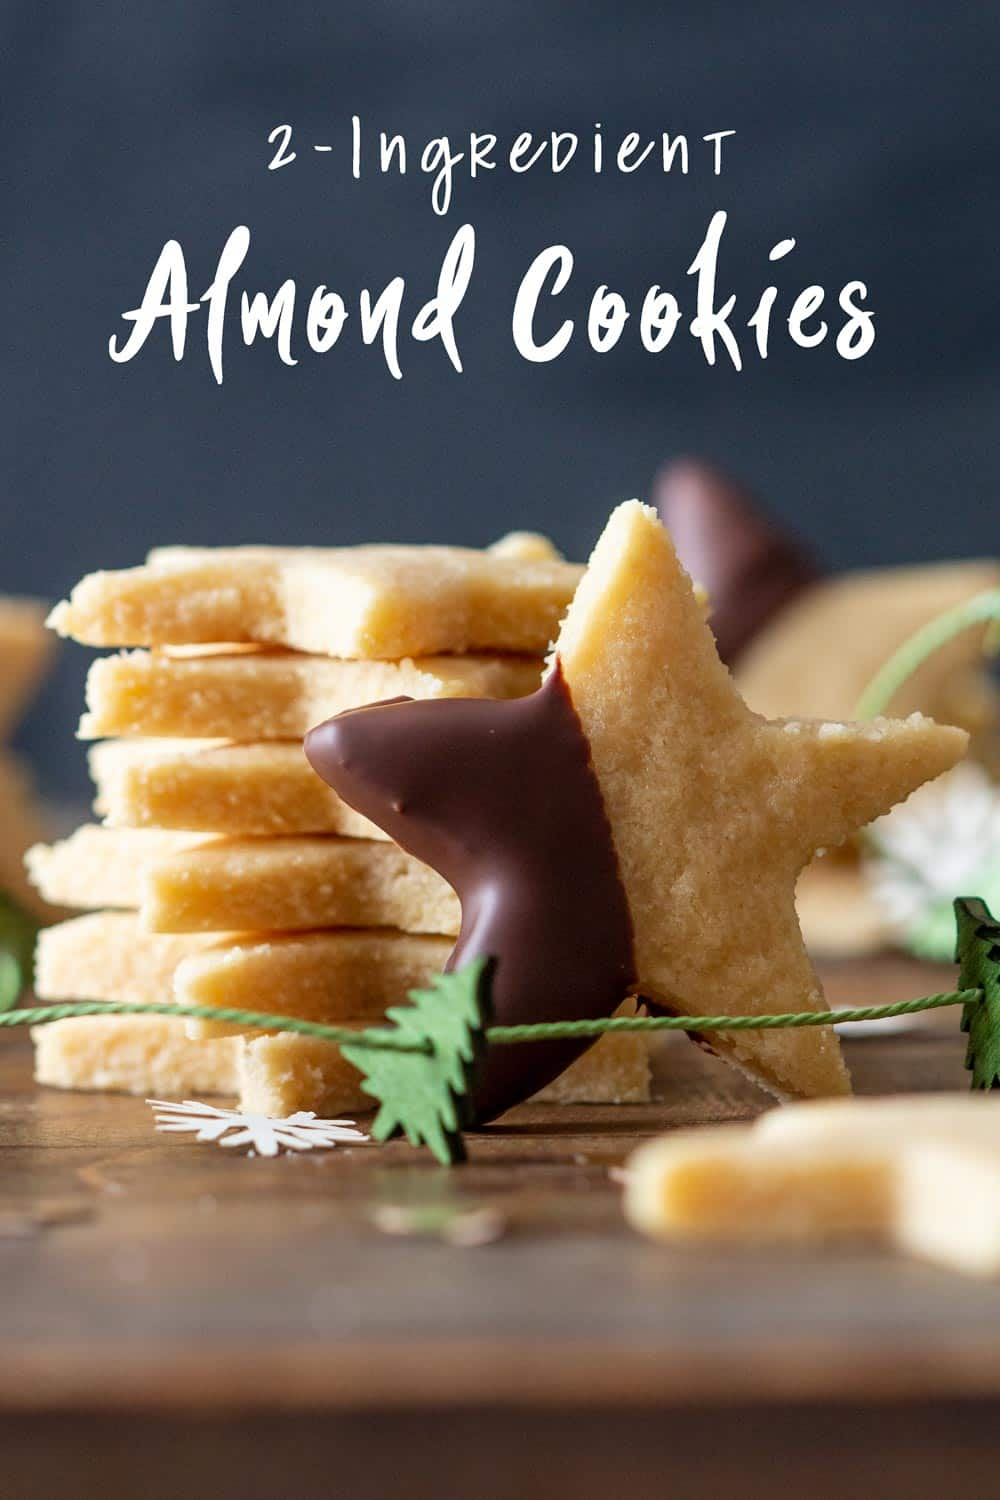 One Almond Flour Cookie leaning agains a stack of Almond Cookies